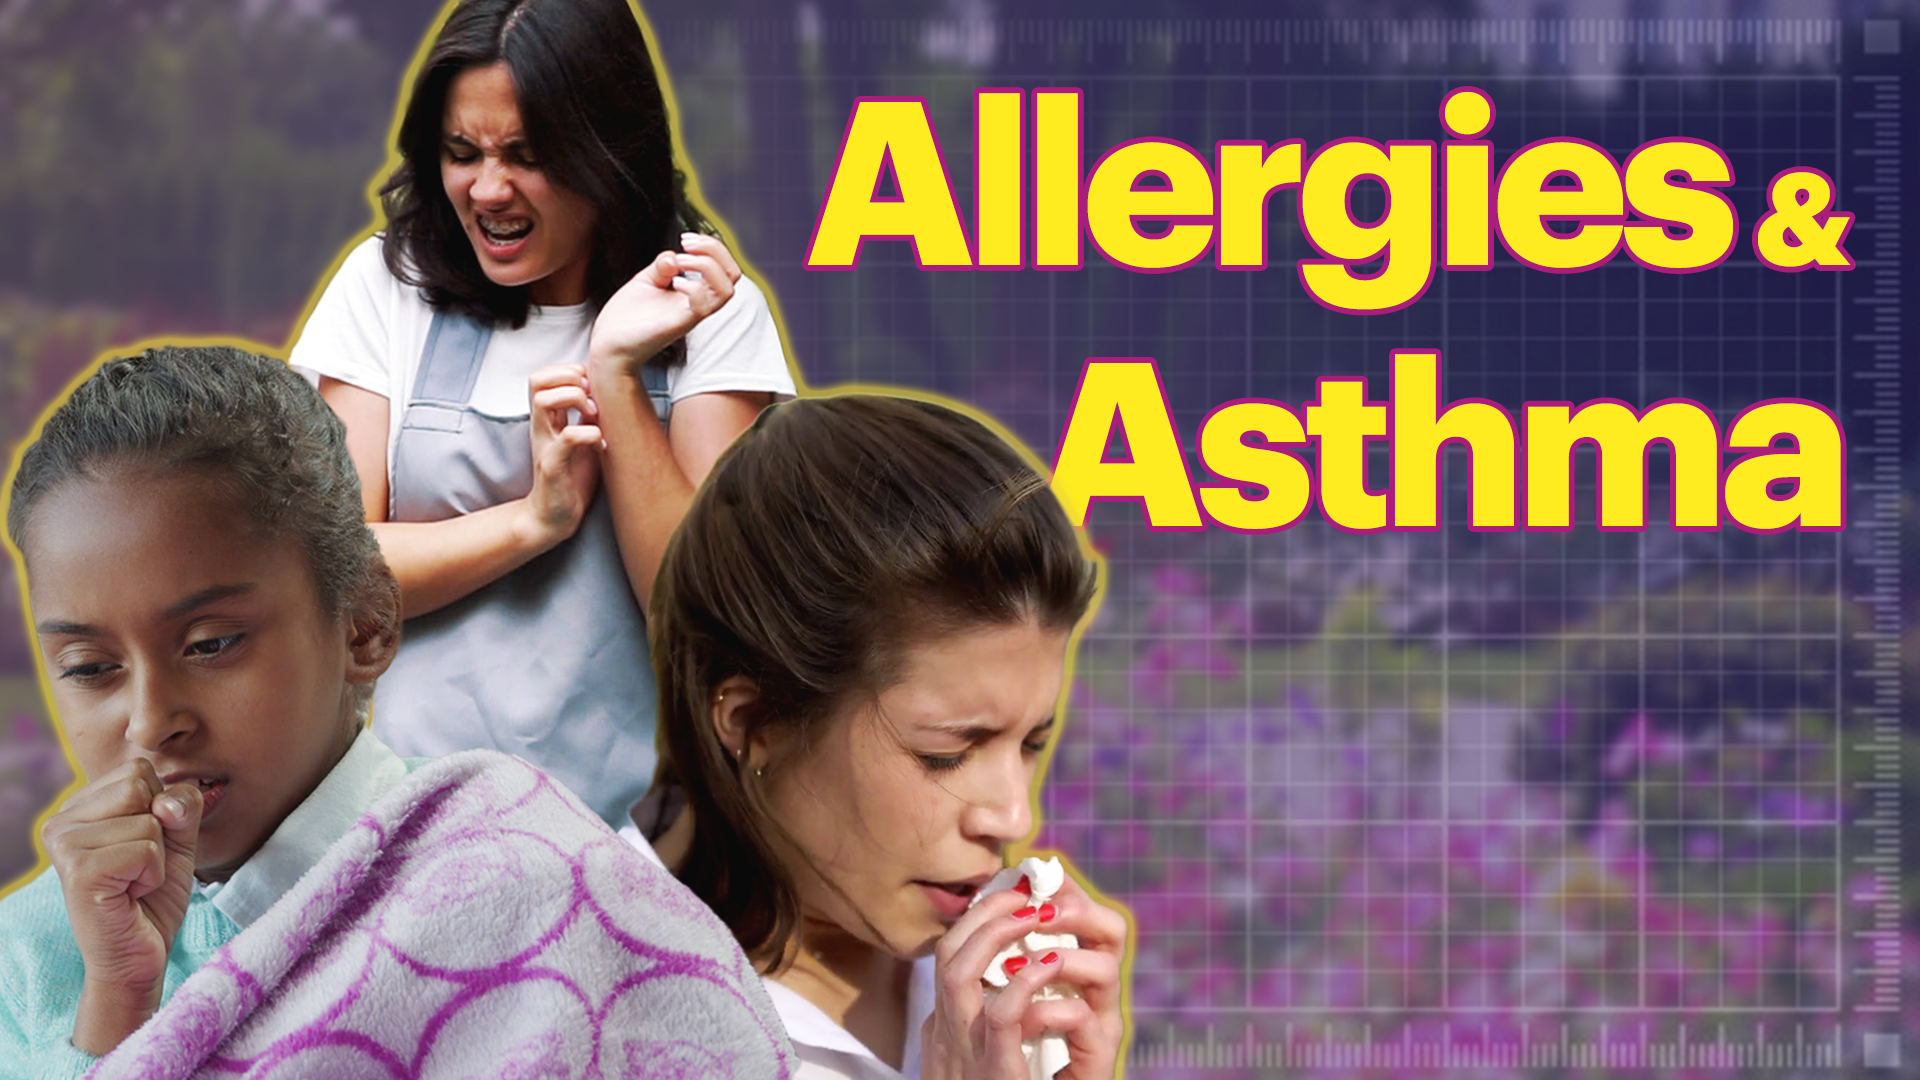 Allergies & Asthma.png